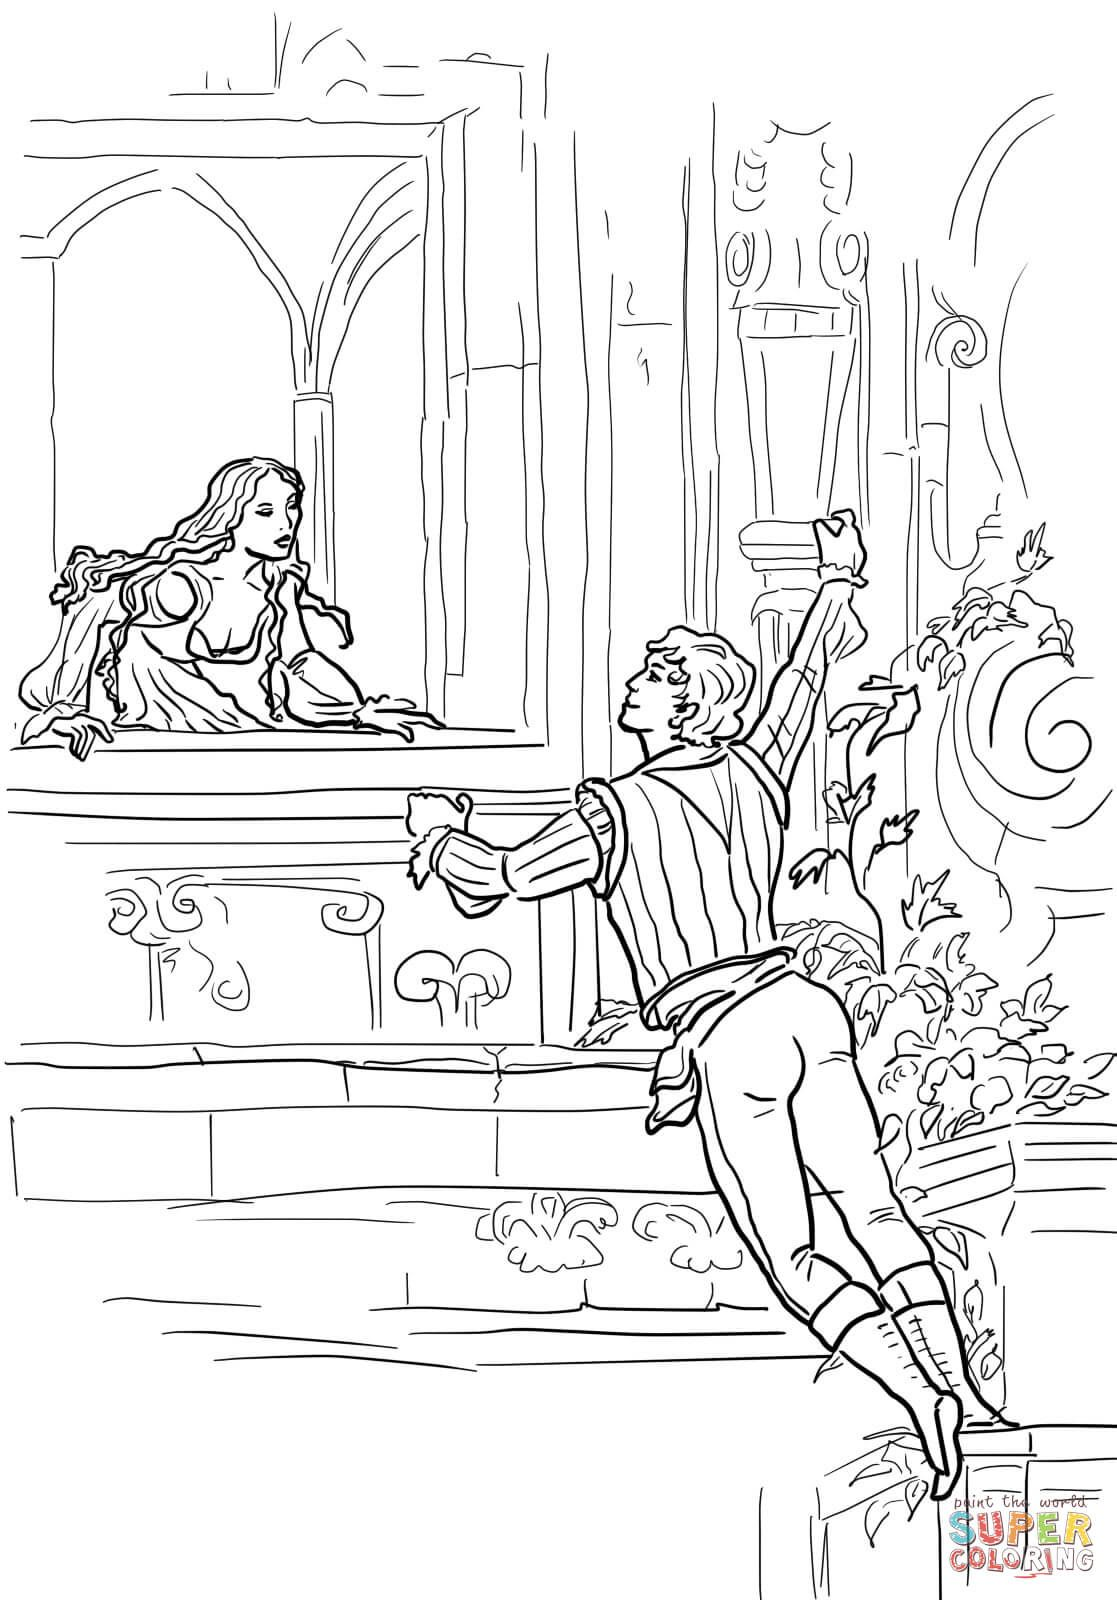 Romeo And Juliet Drawing Easy : romeo, juliet, drawing, Romeo, Juliet, Balcony, Scene, Drawing, Tutorial